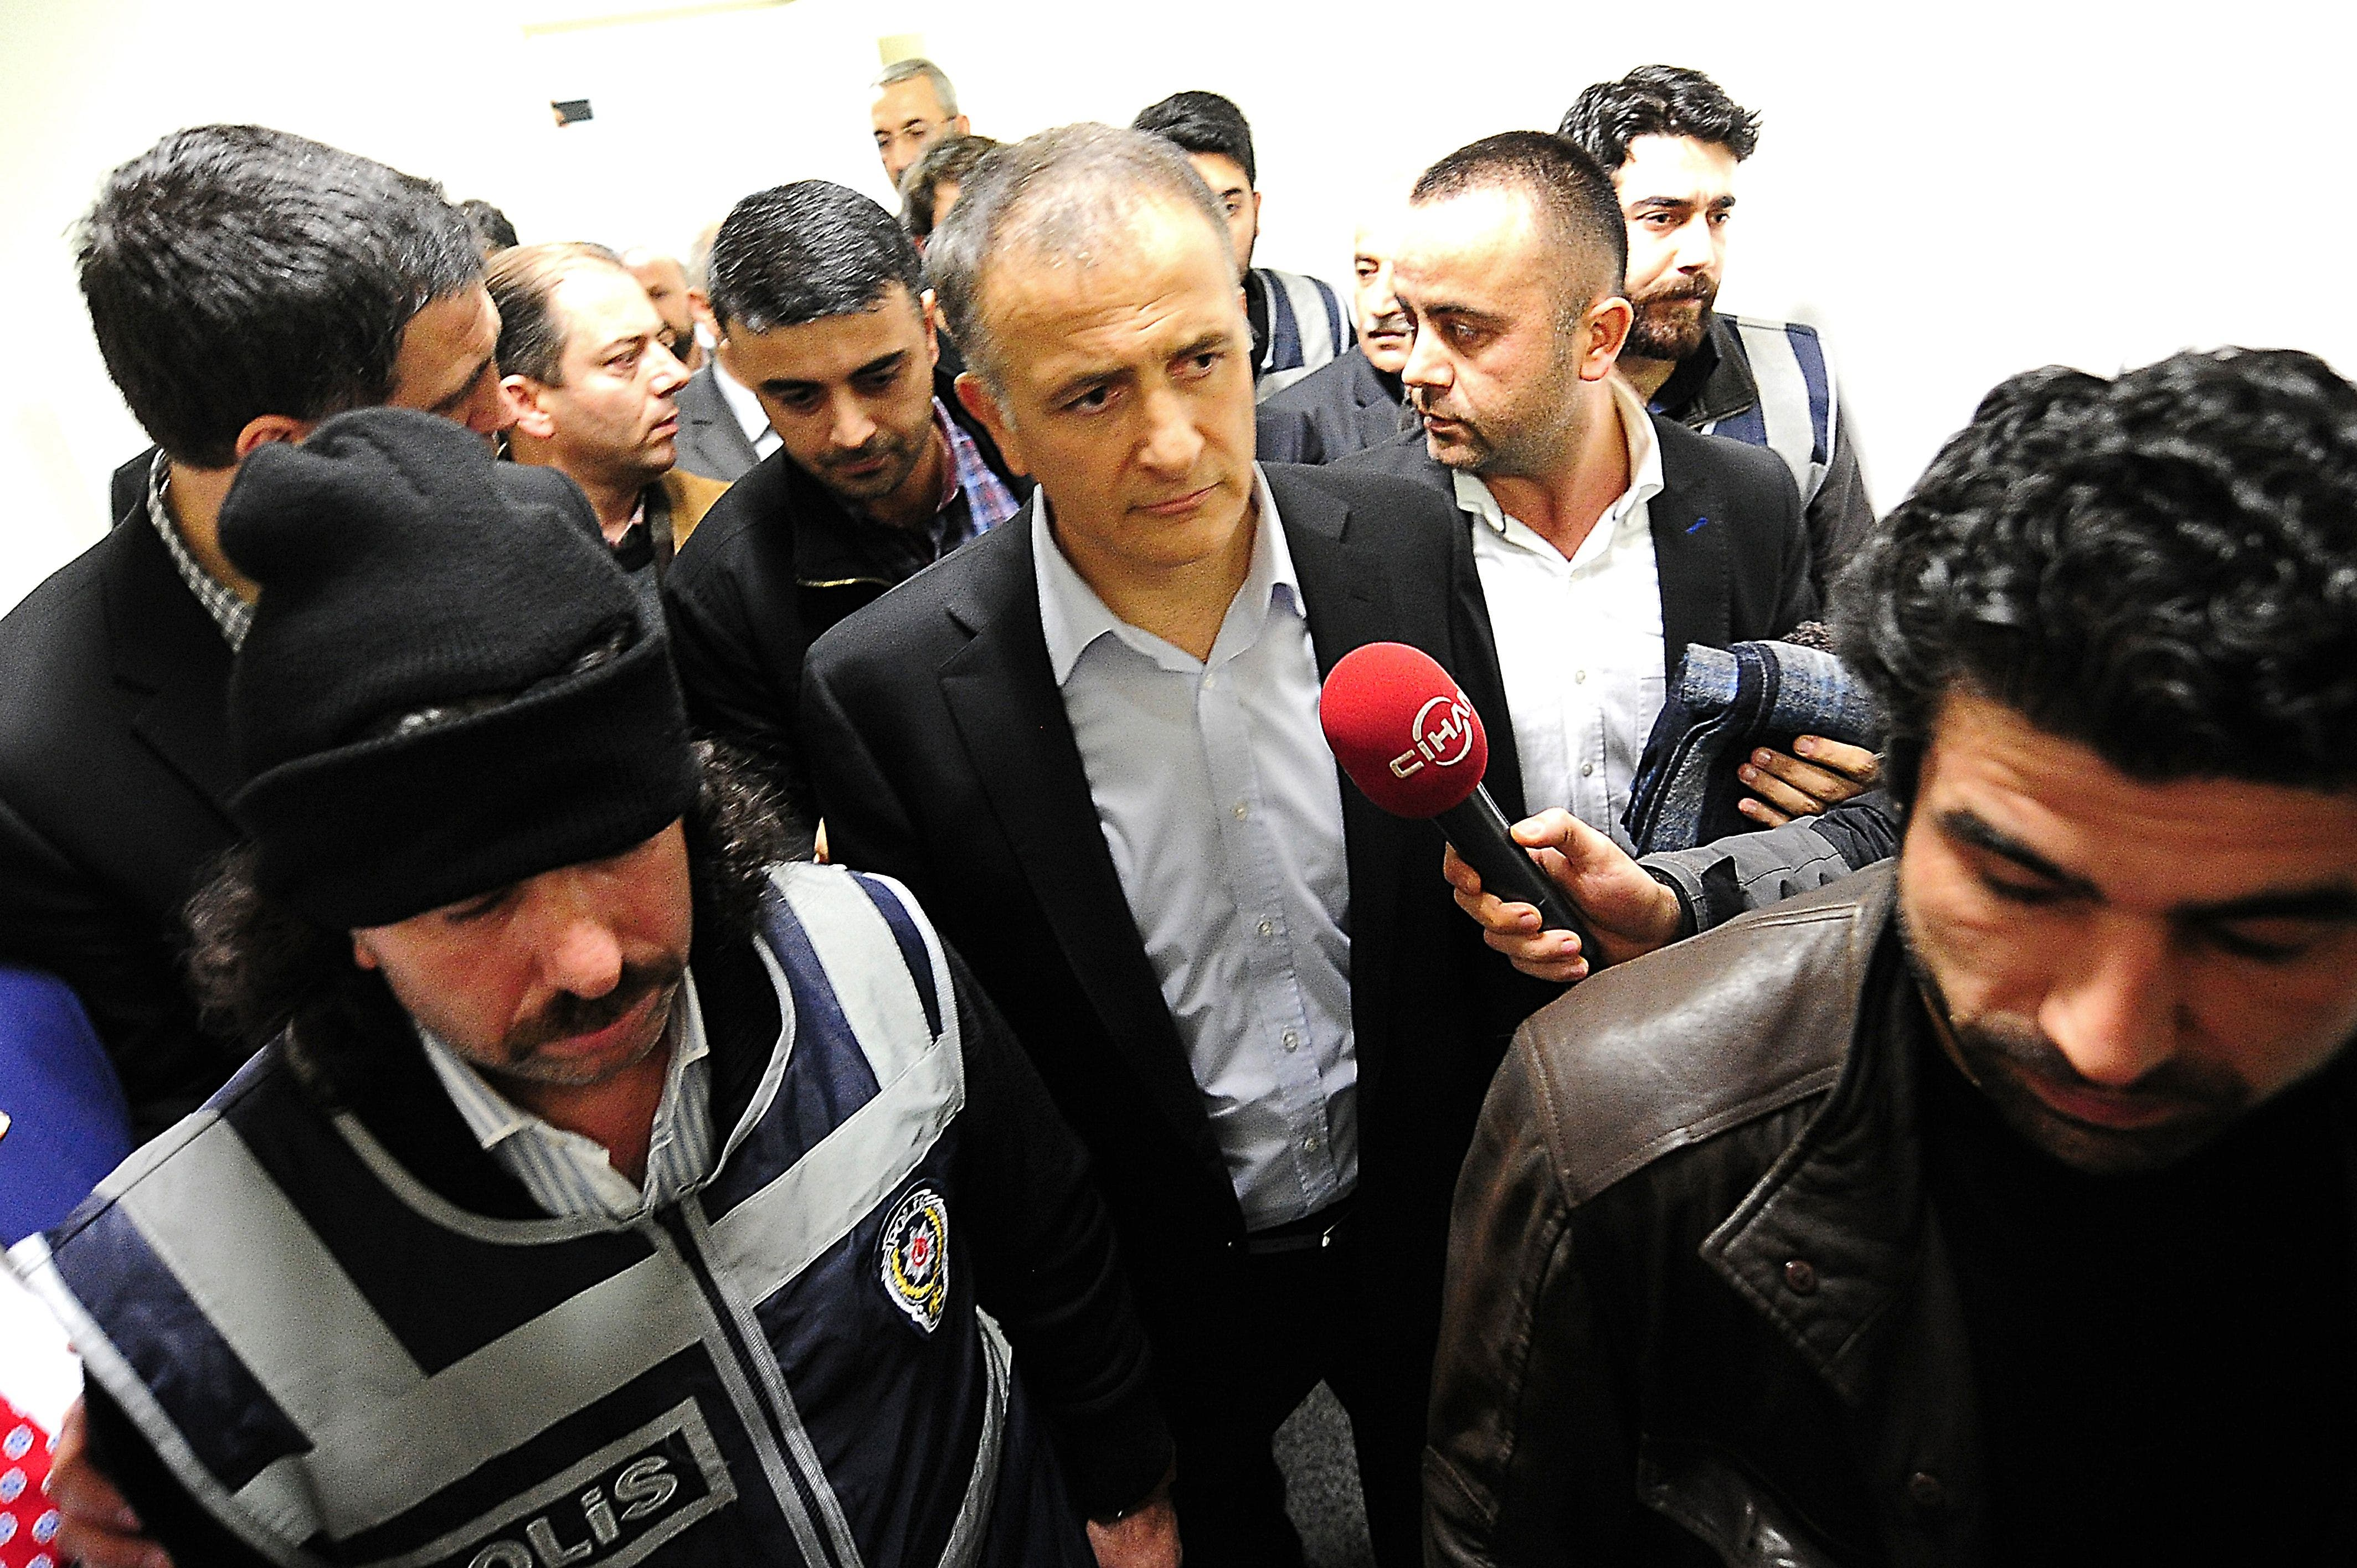 Turkey's Zaman newspaper editor-in-chief Ekrem Dumanli (C) is detained by counter-terror police at Zaman headquarters in Istanbul on December 14, 2014. AFP